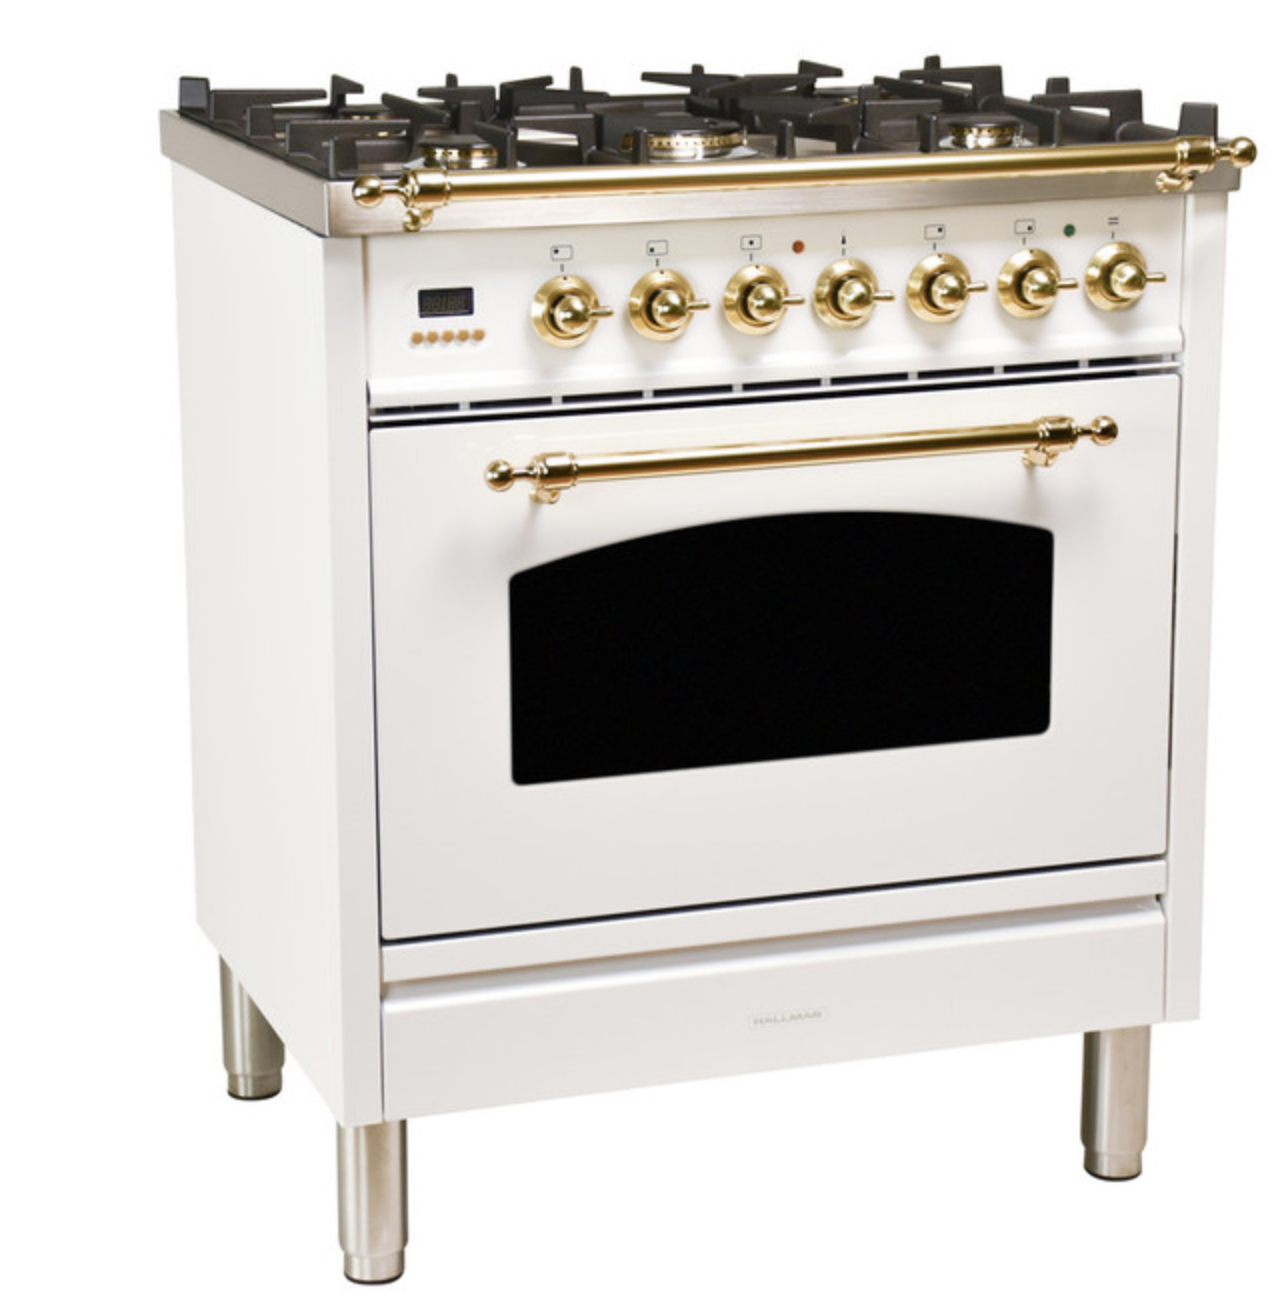 Euro-style oven and range in white with gold hardware